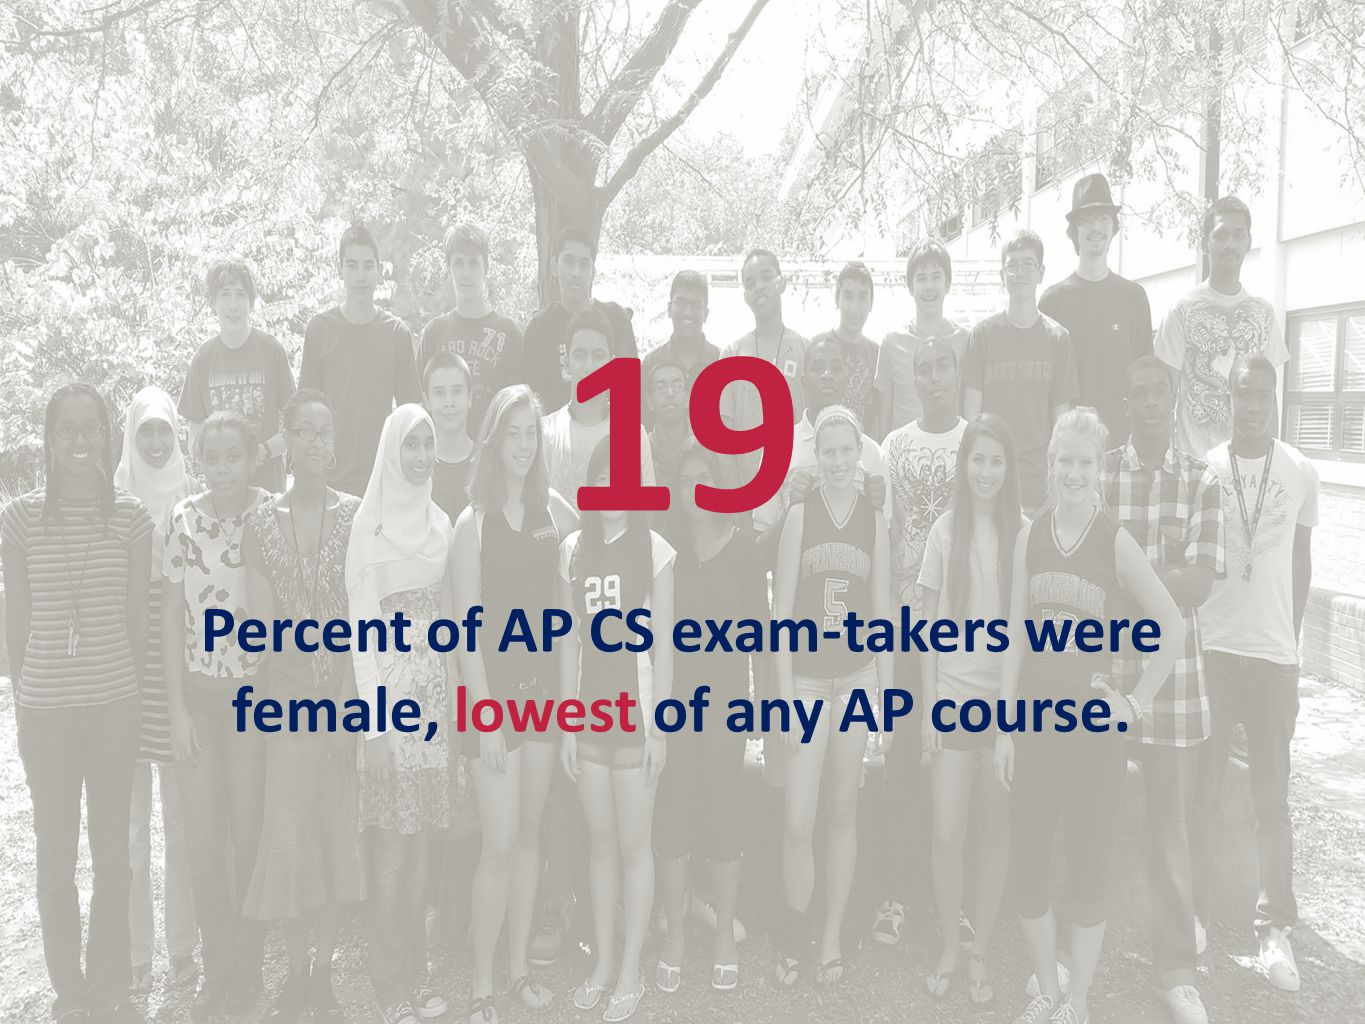 19 Percent of AP CS exam-takers were female, lowest of any AP course.